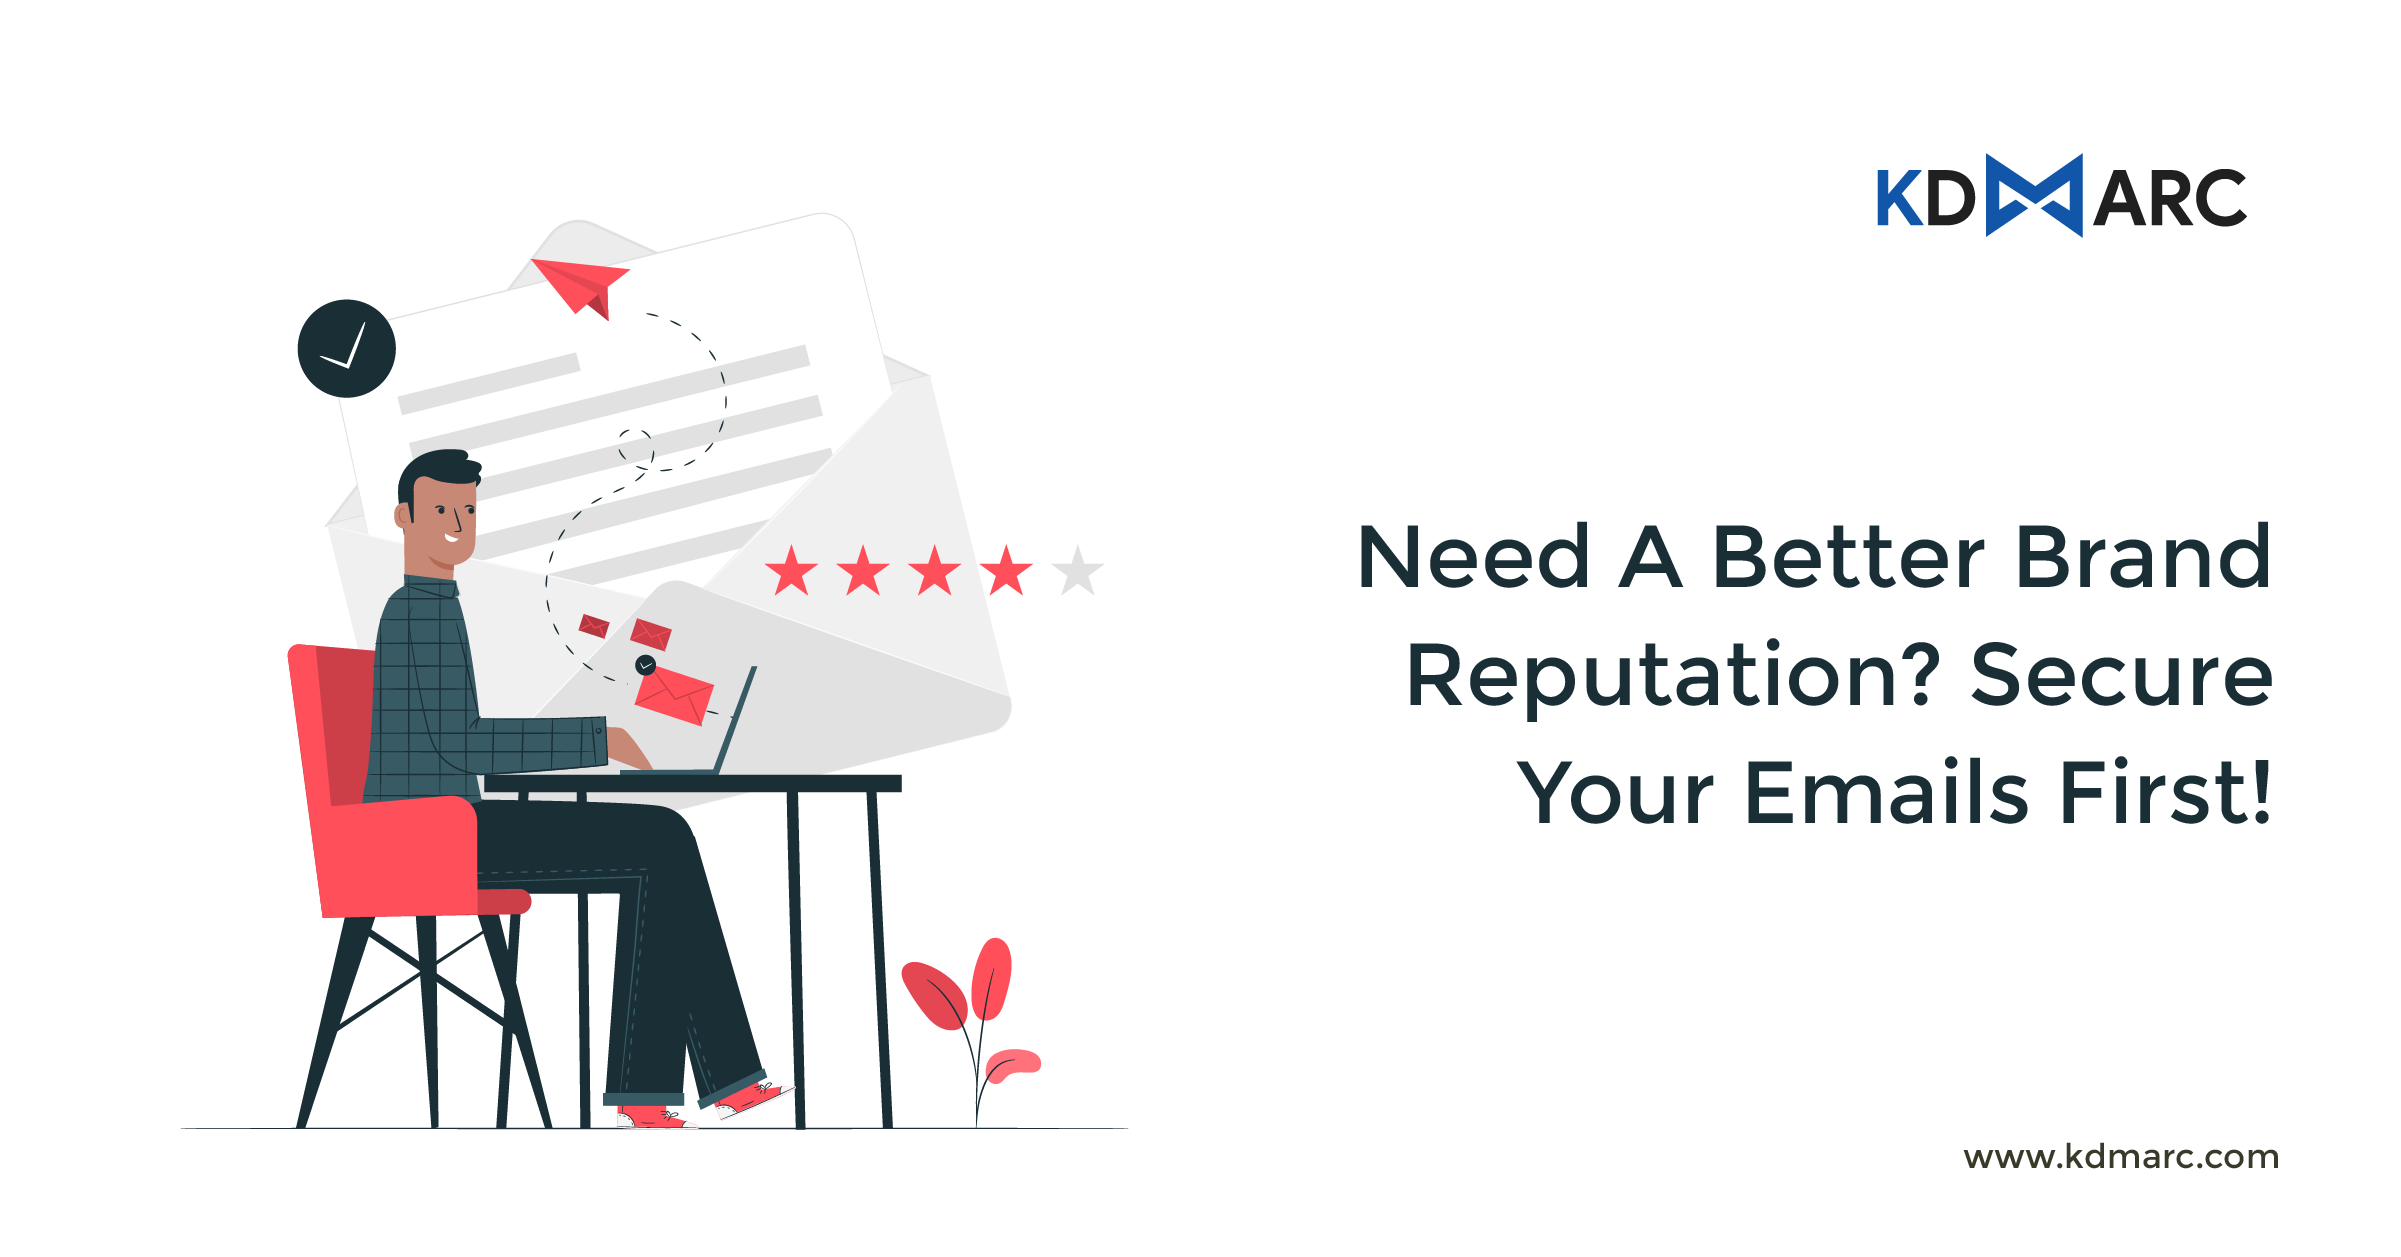 Need a Better Brand Reputation? Secure Your Emails First!